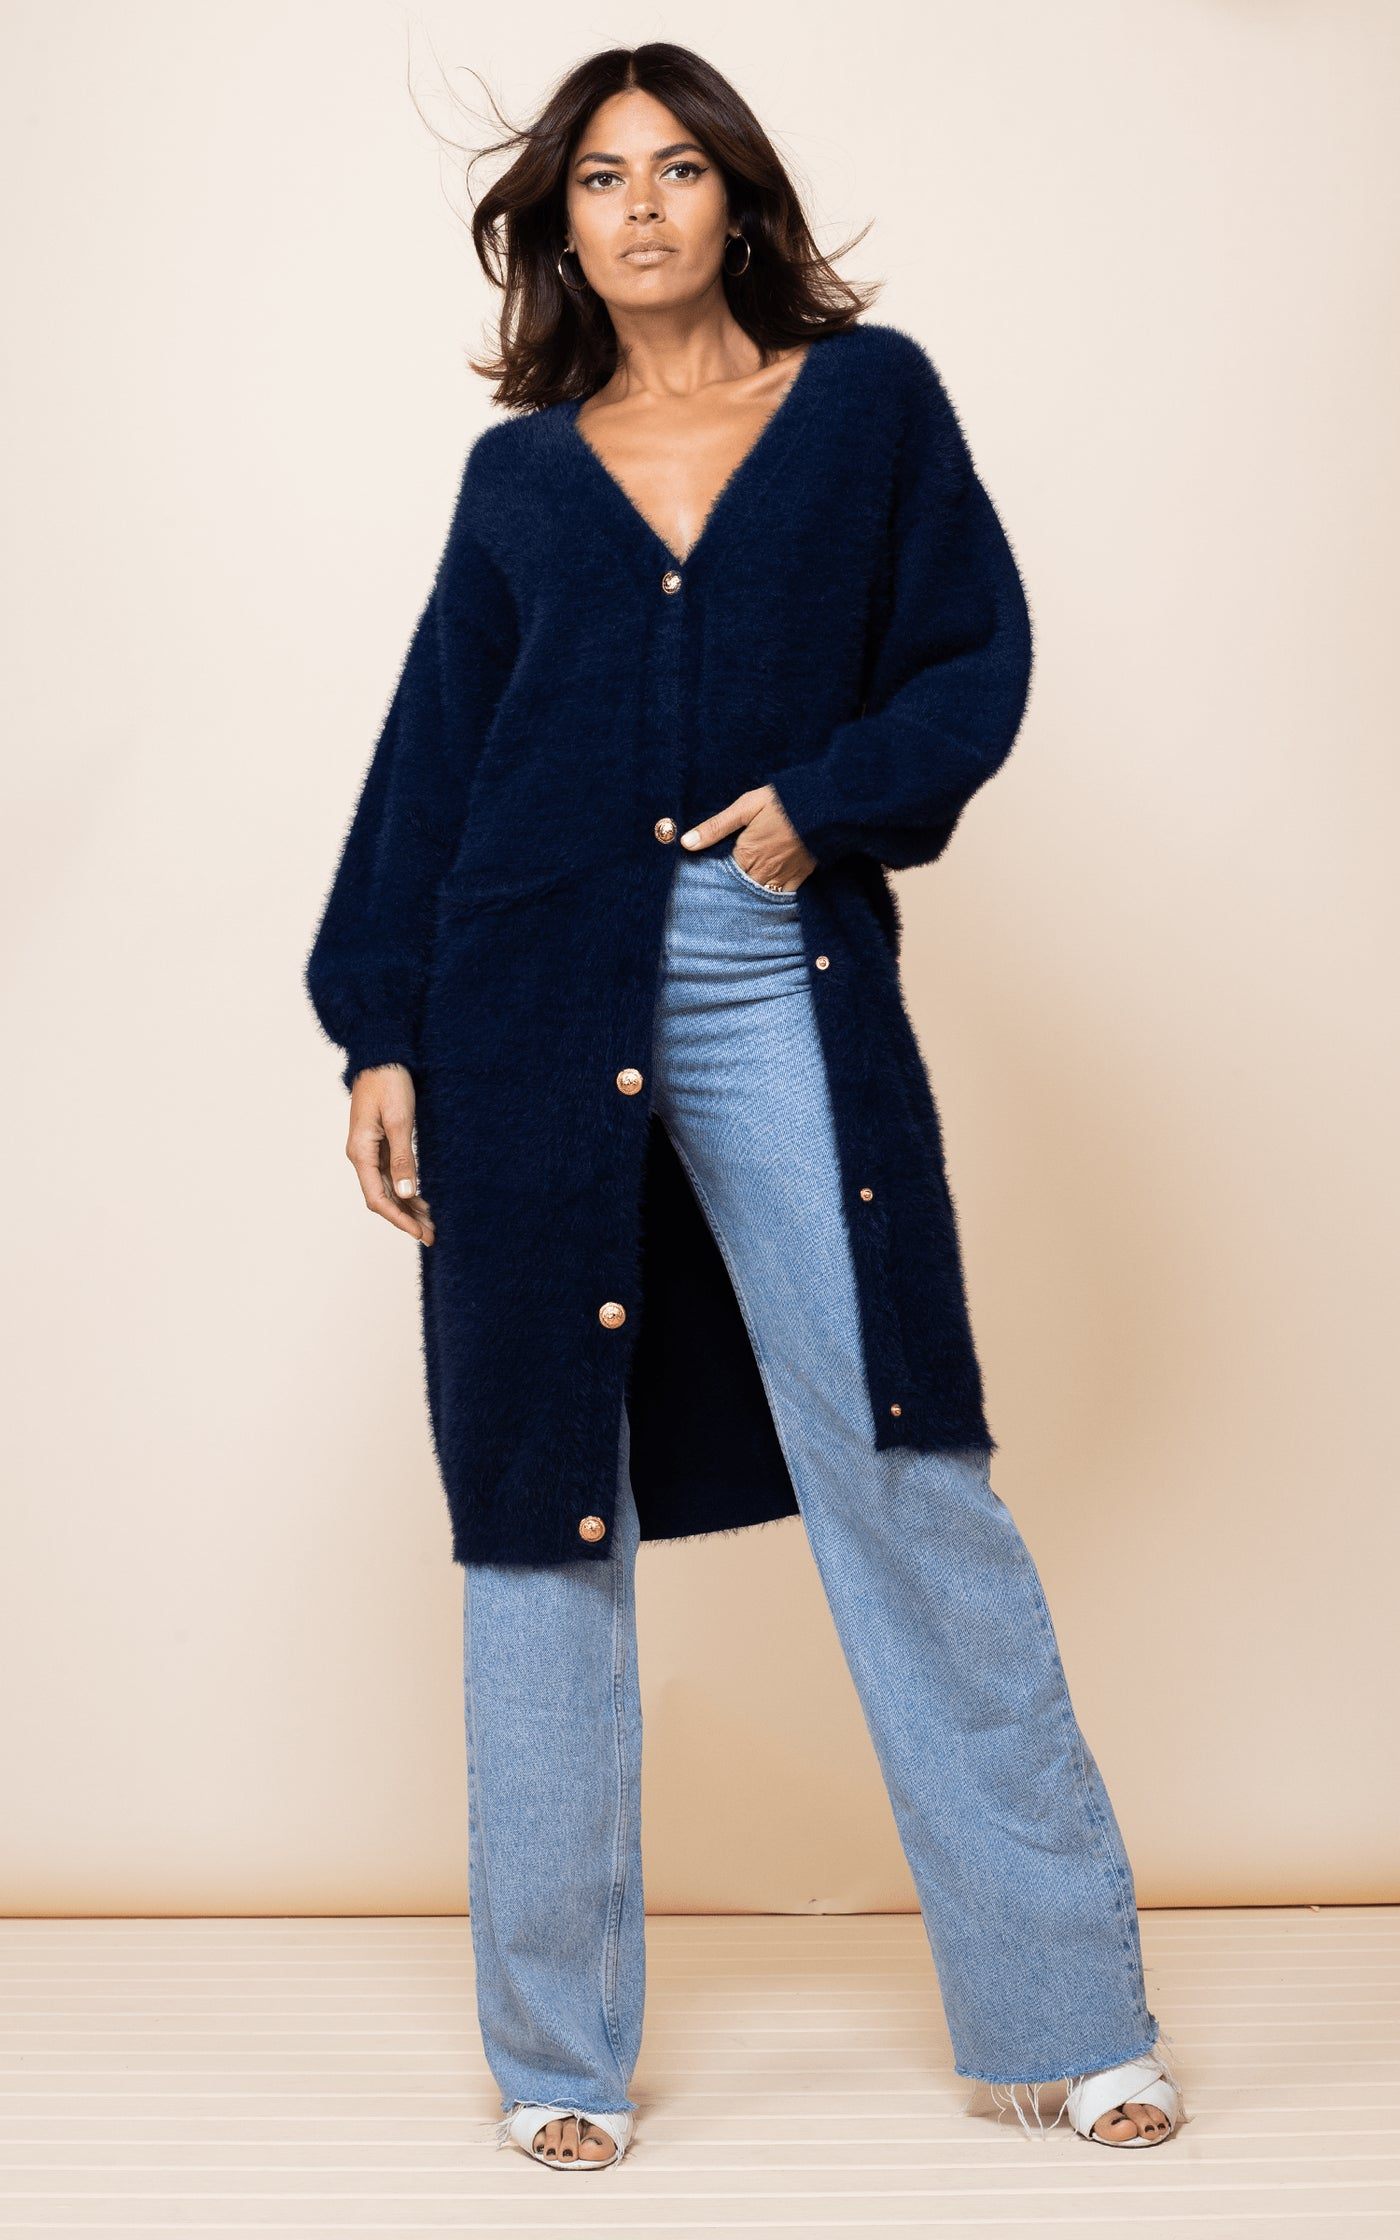 Dancing Leopard model faces forward wearing Taylor Cardigan in Navy with jeans